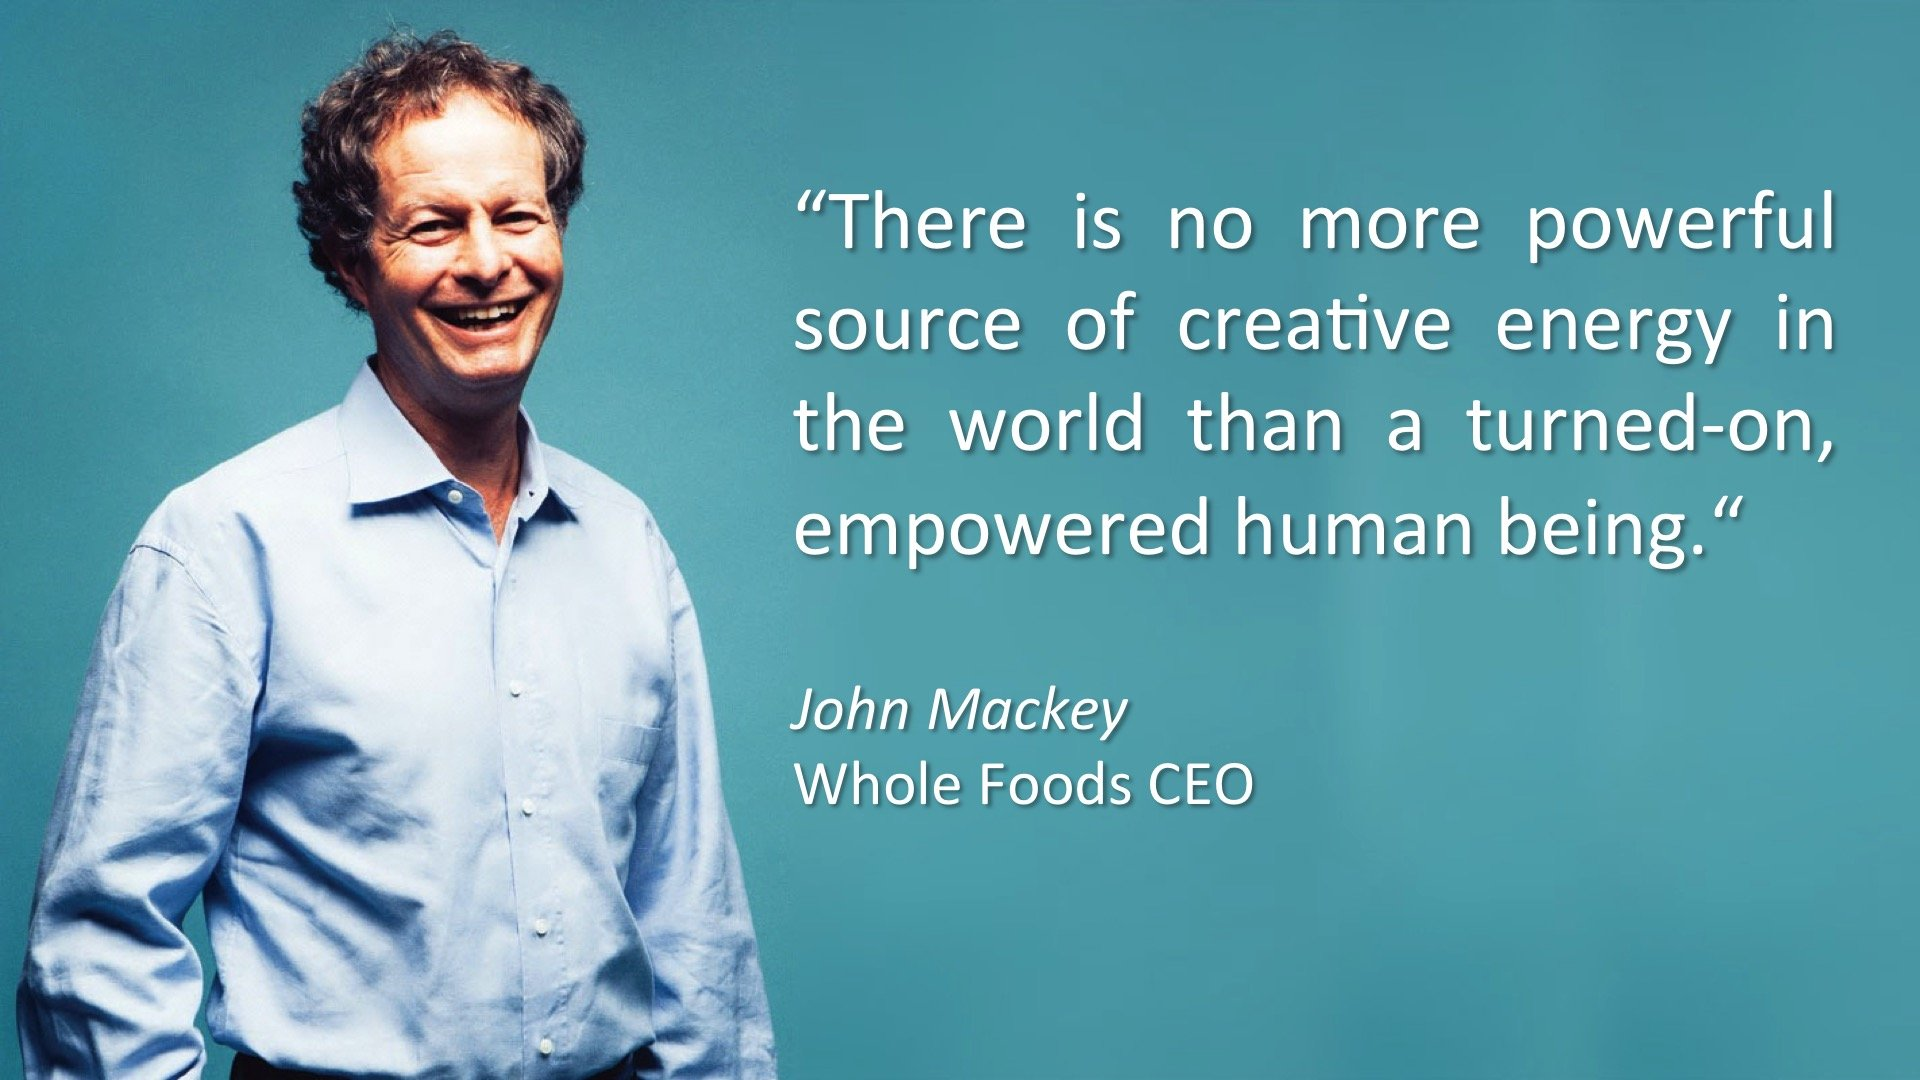 """There is no more powerful source of creative energy in the world than a turned-on, empowered human being"" ~ John Mackey, Whole Foods CEO"